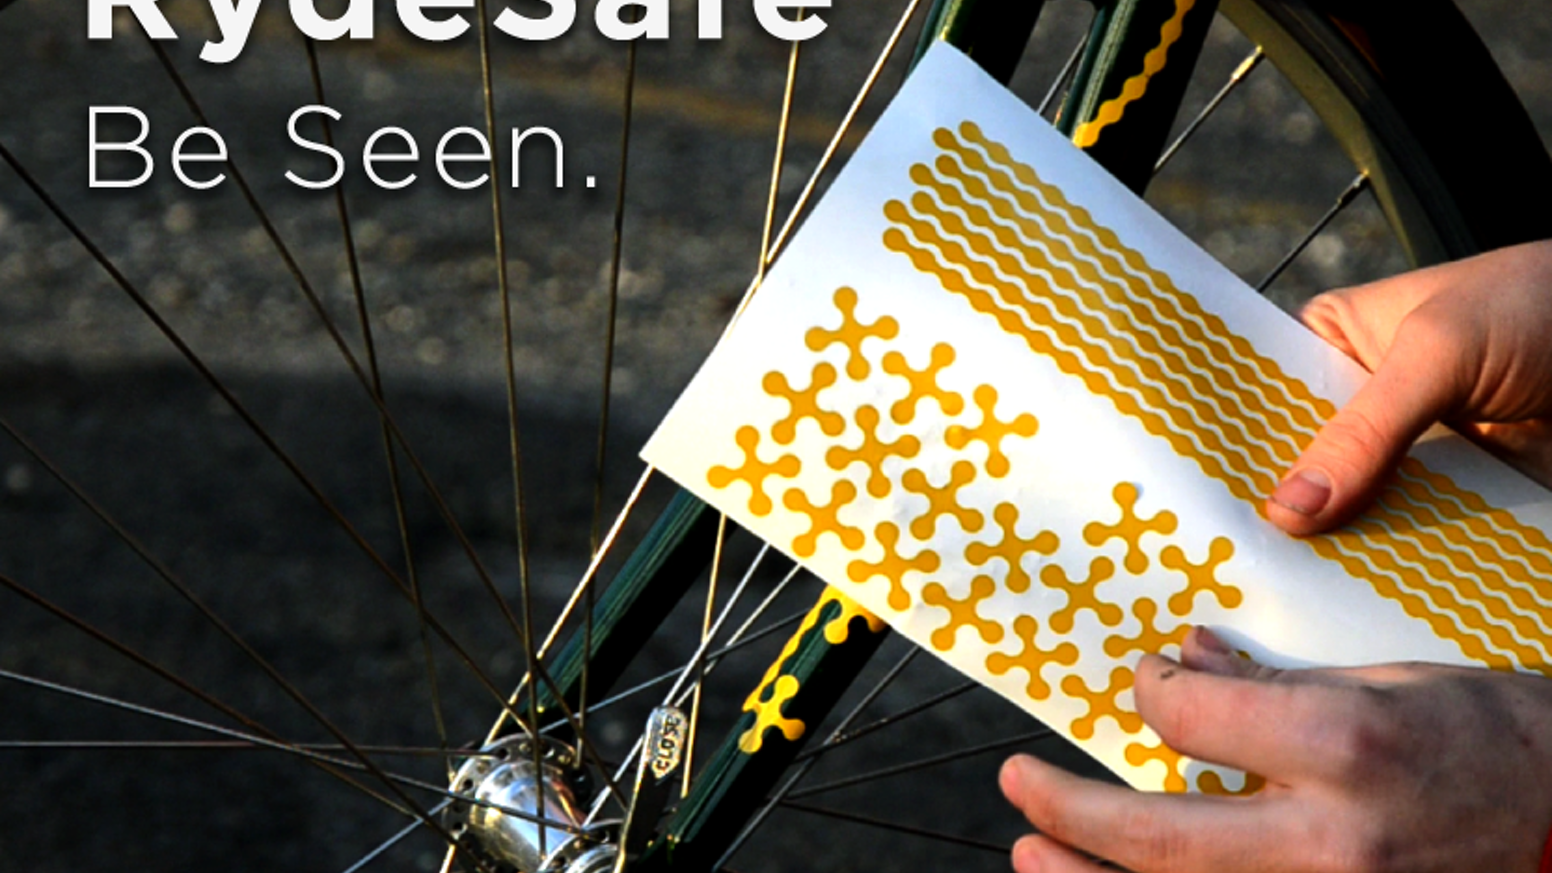 RydeSafe Reflective Decals make you safer at night. RydeSafe.com